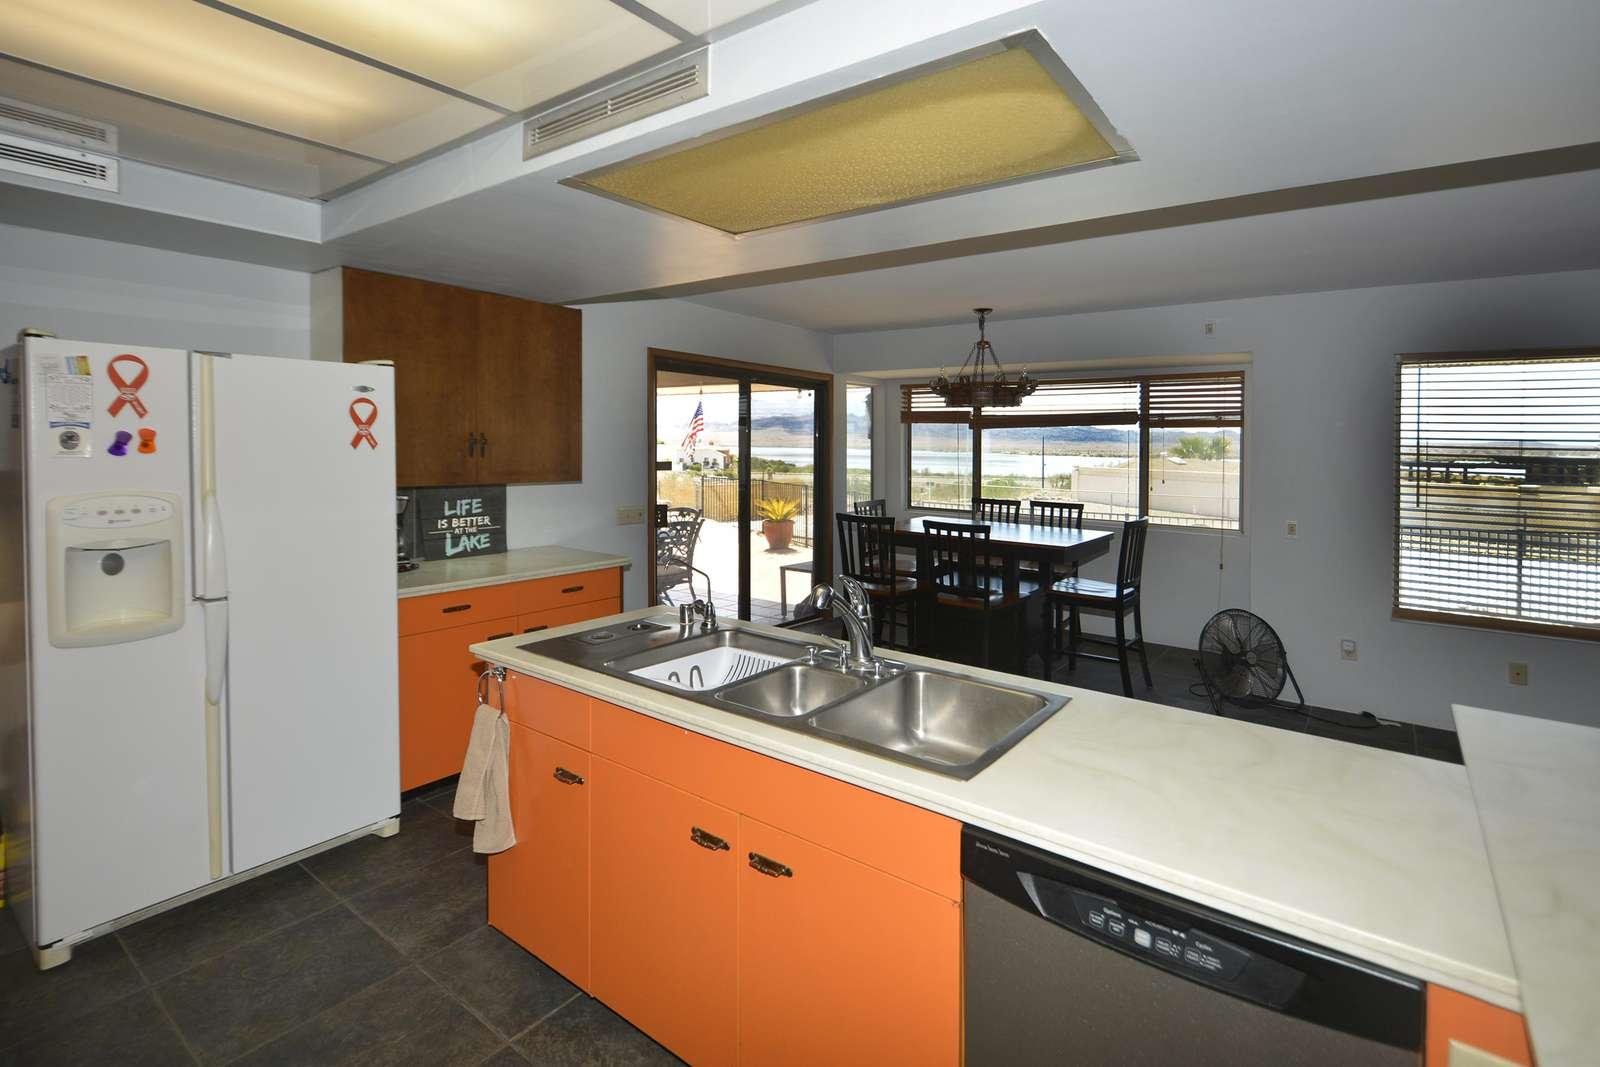 Kitchen duty was never so appealing - lake view is right in front of you